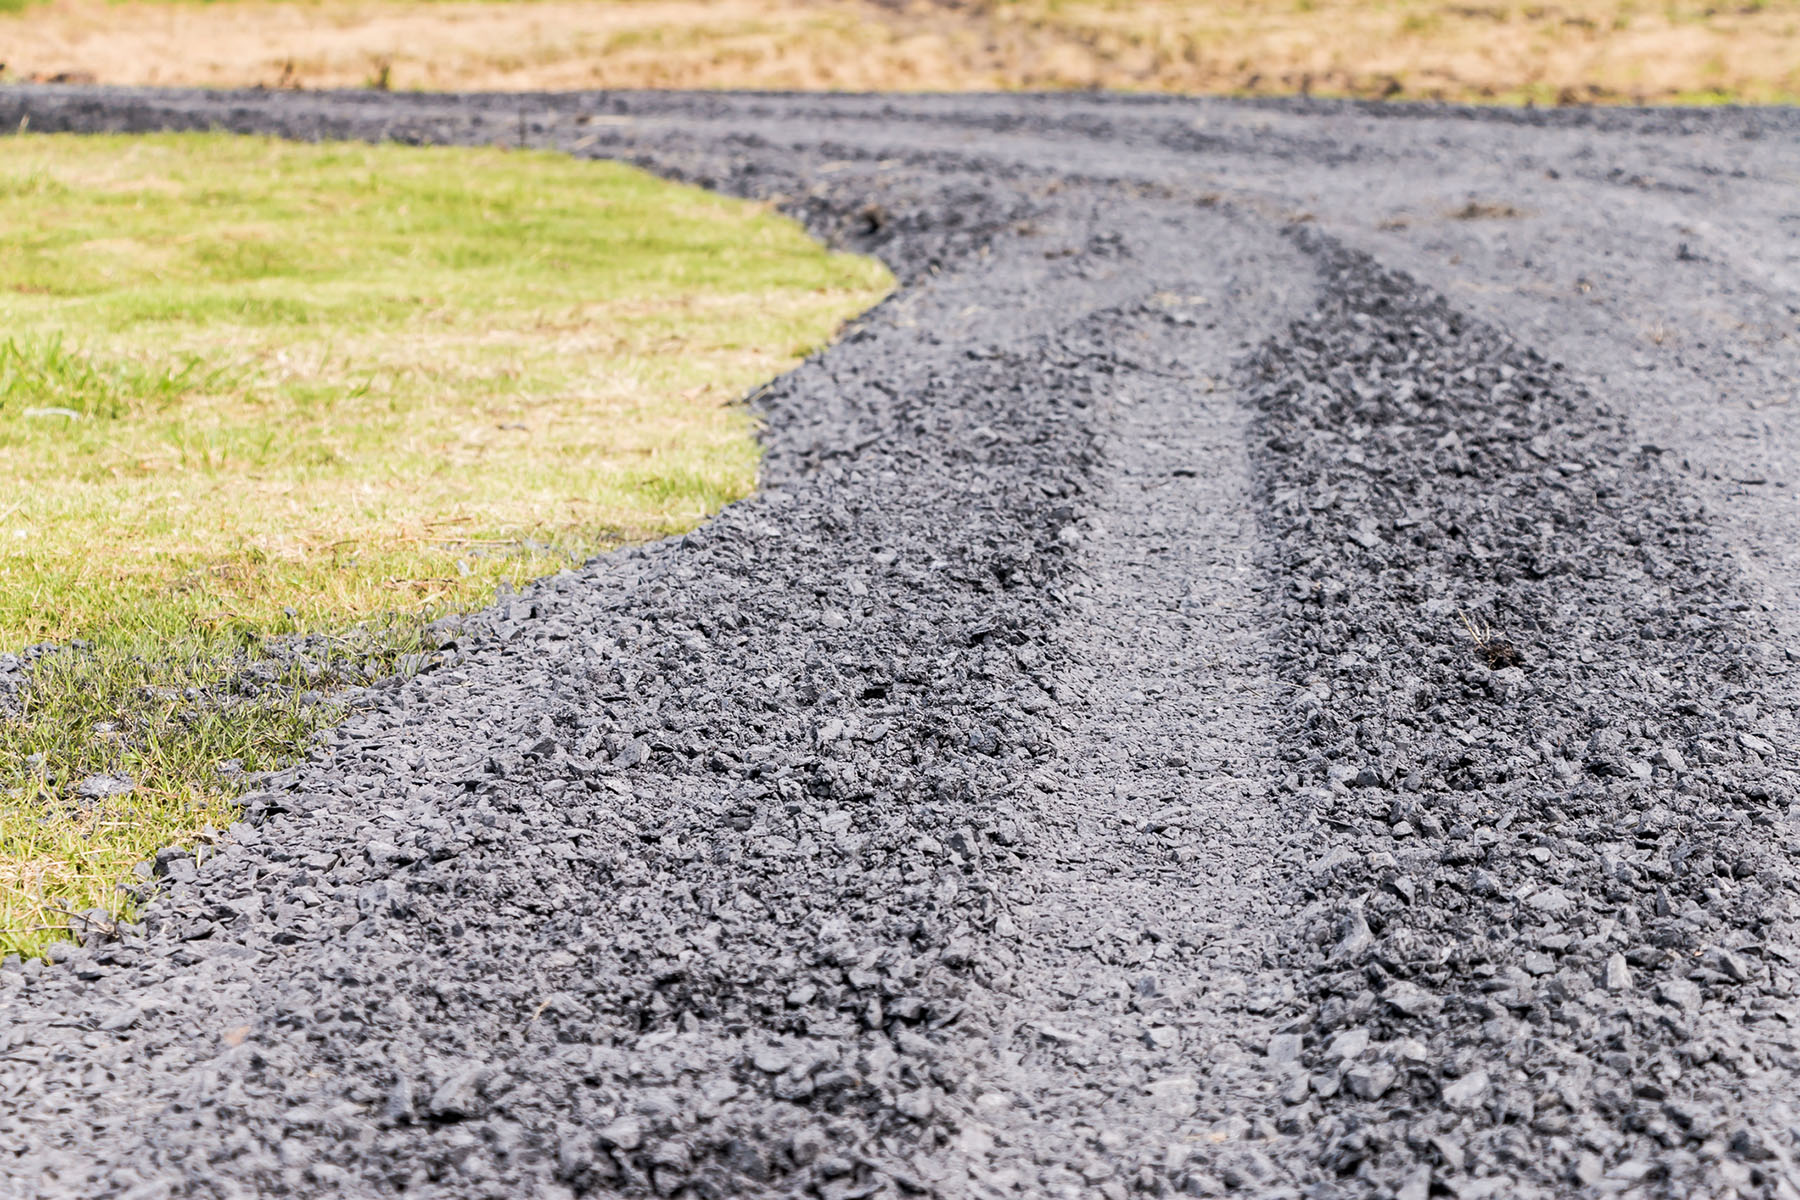 Asphalt Supplier Sheffield | Pouring asphalt for road building | Sheffield Coated Stone